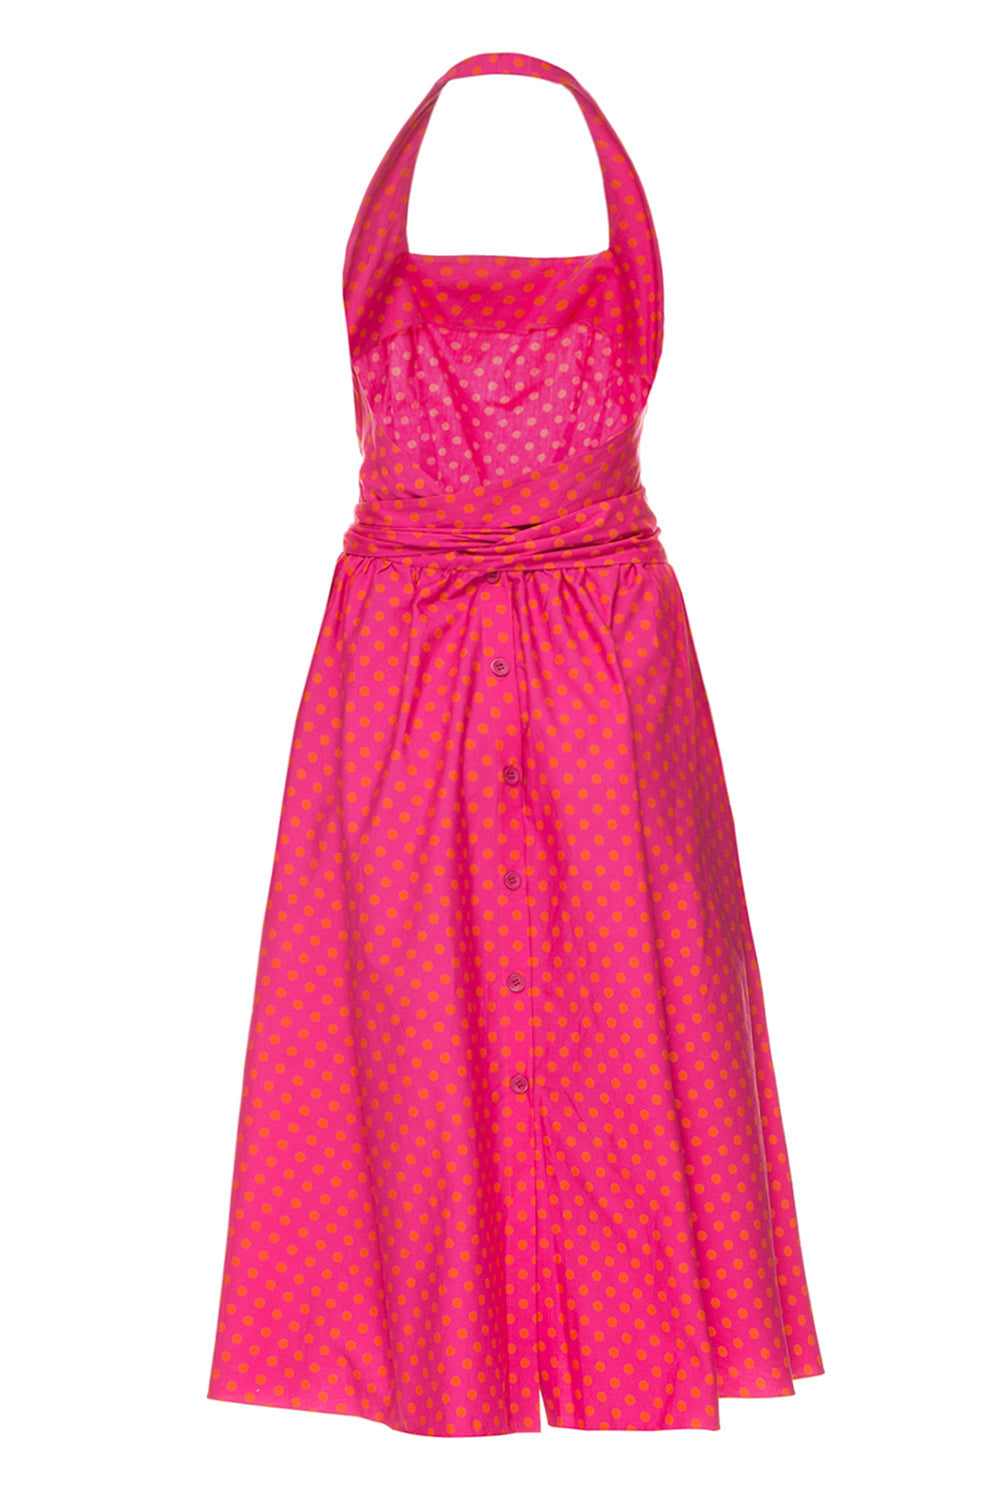 Pink polka dot sundress